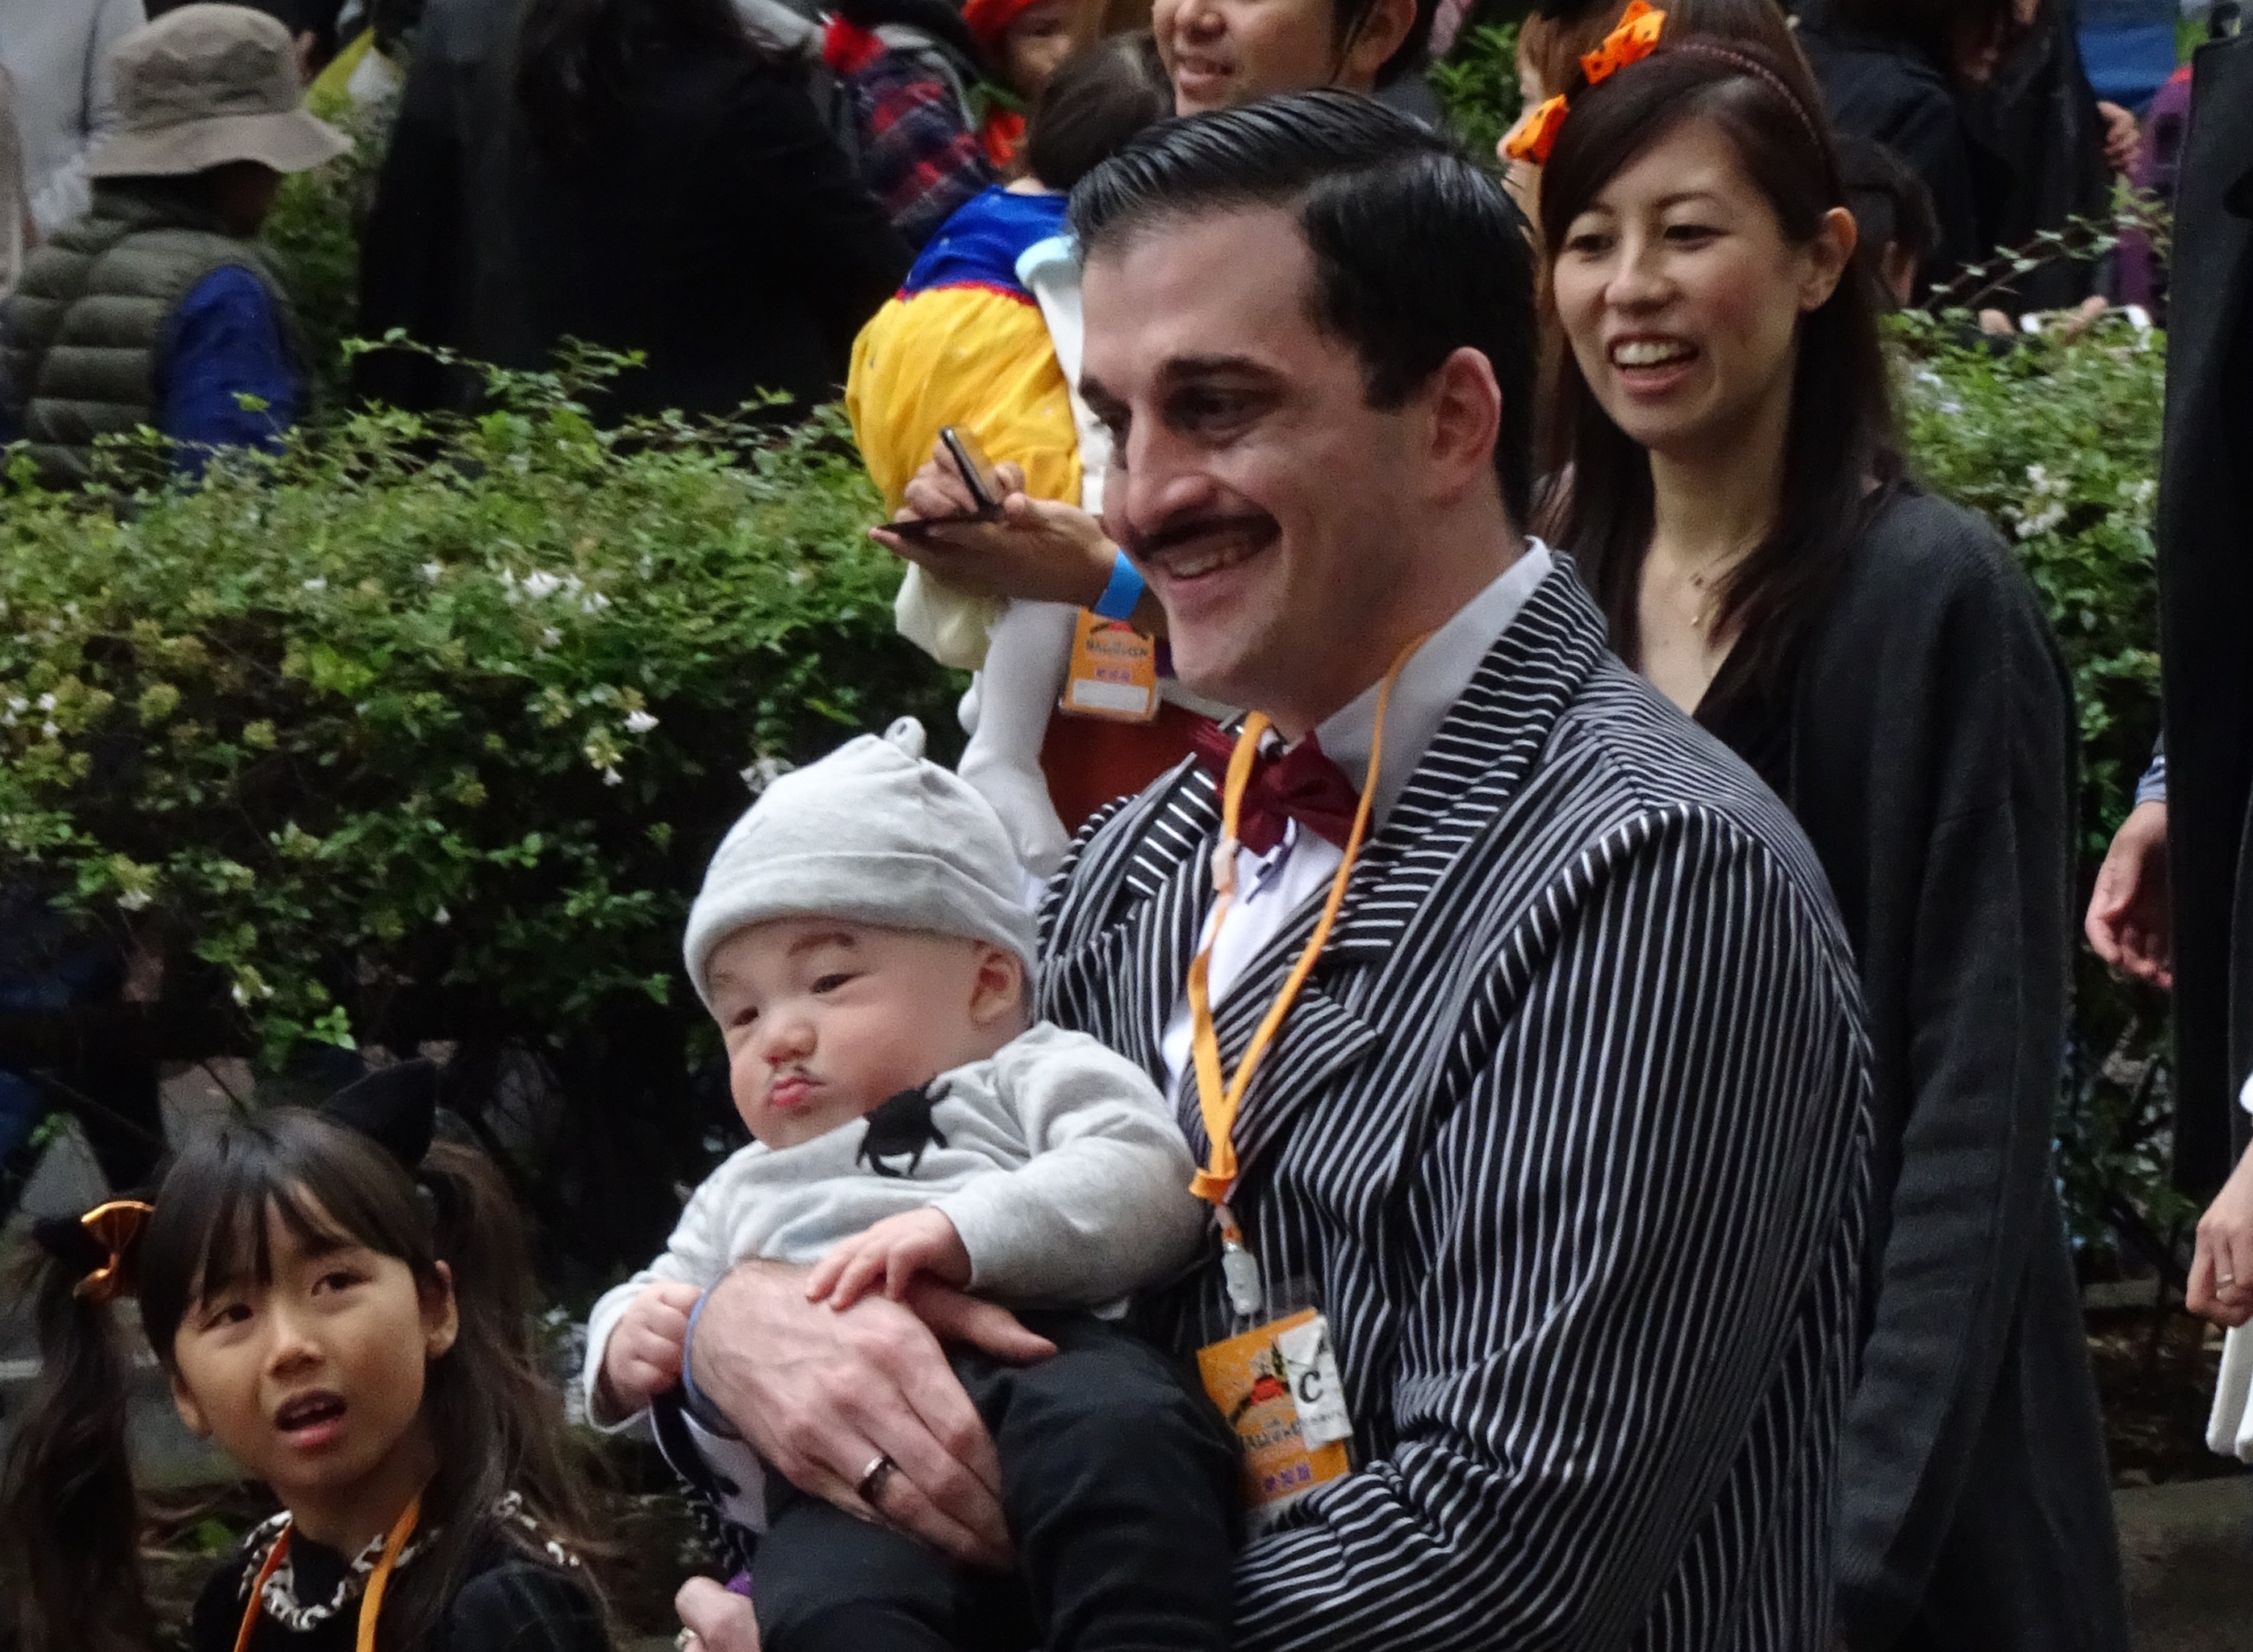 Dad and baby moustache.jpg